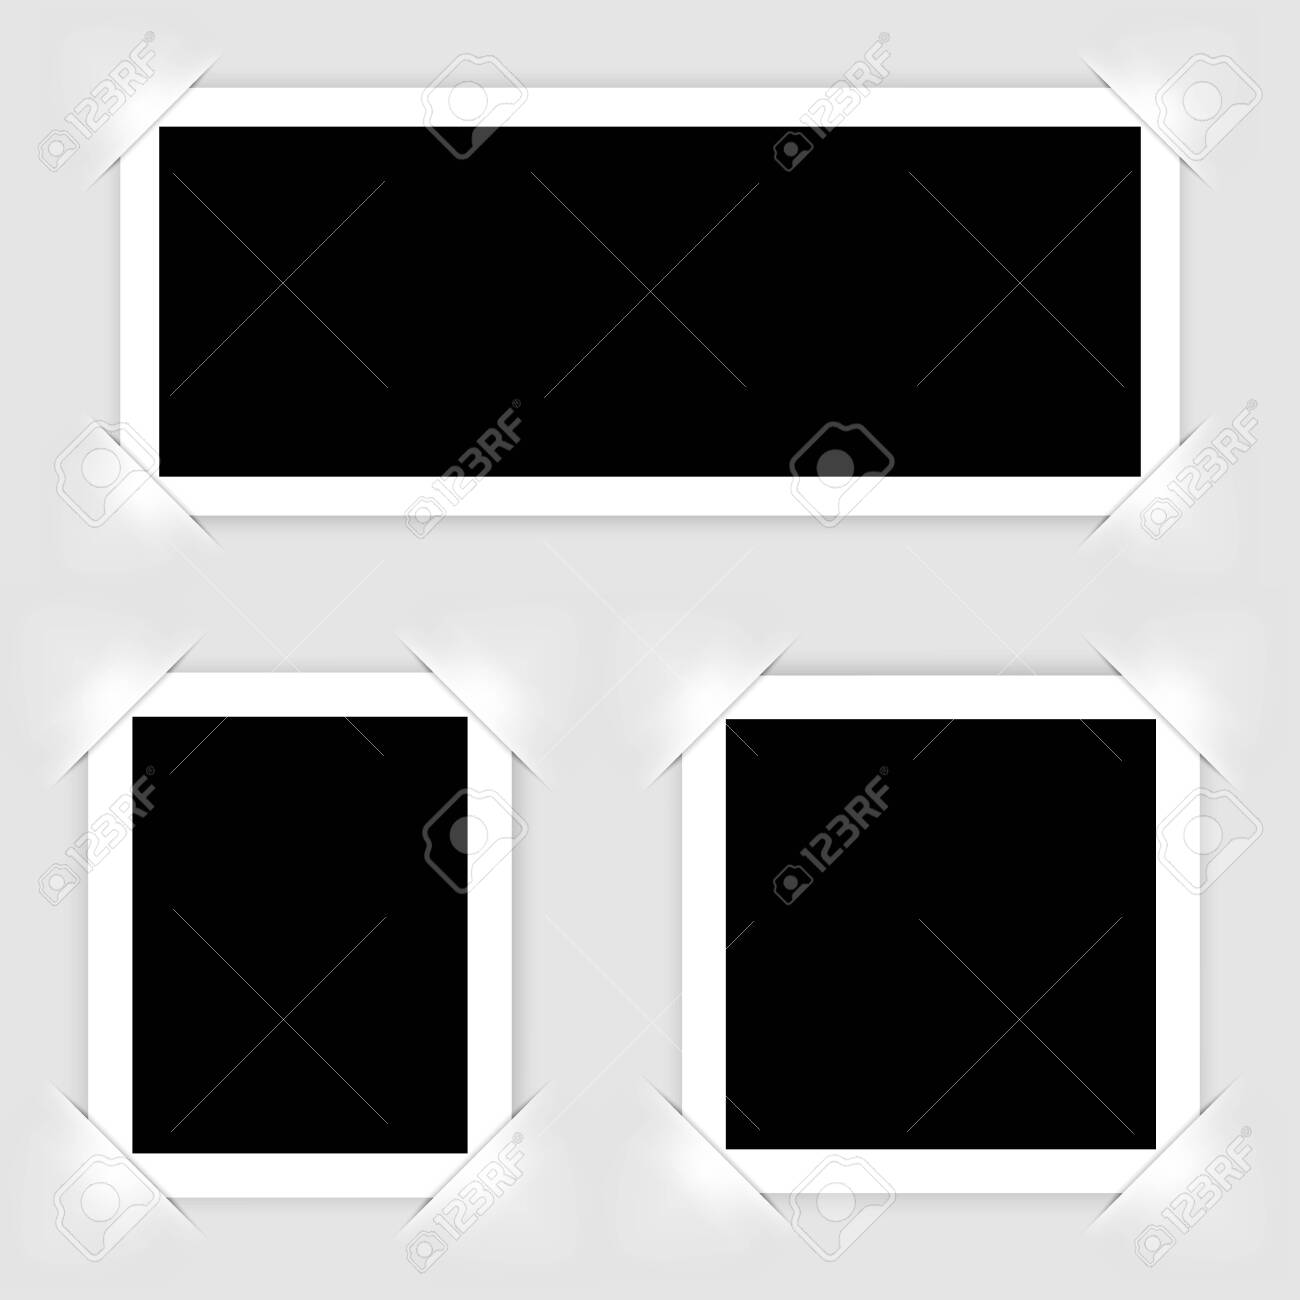 Retro realistic photo frame isolated on white background for template photo design. vector illustration - 129847947